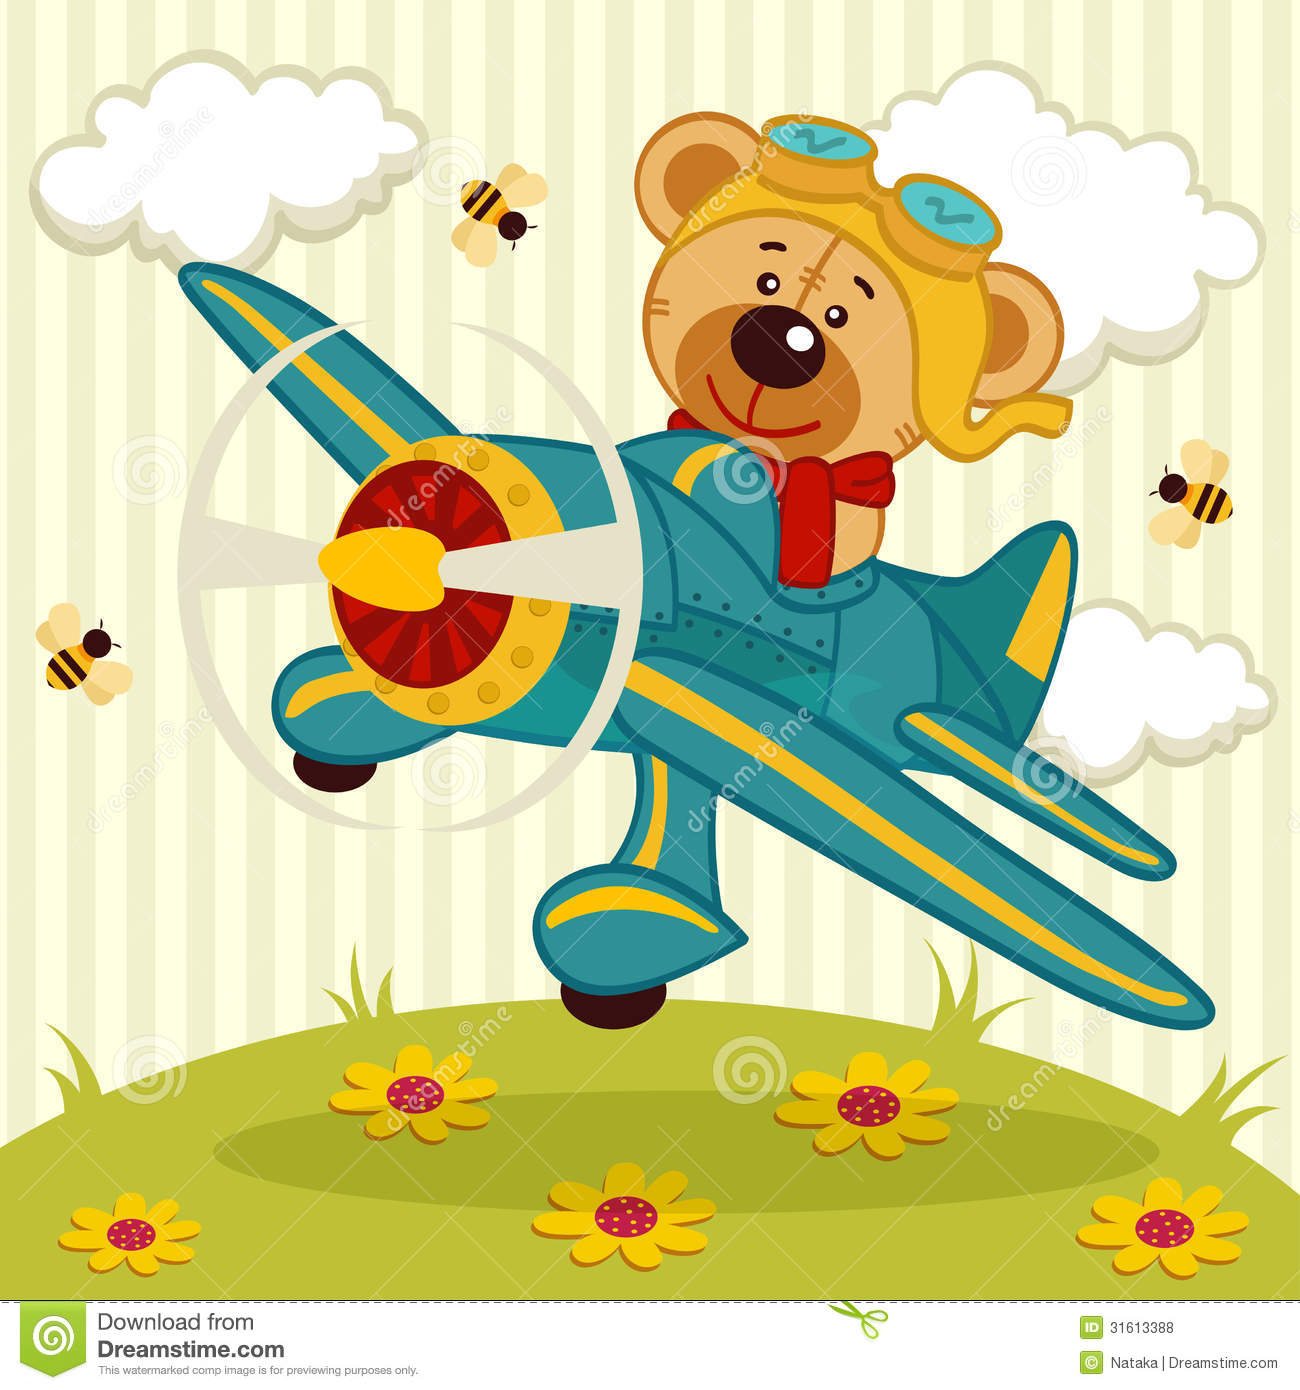 teddy-bear-on-airplane-clipart-1